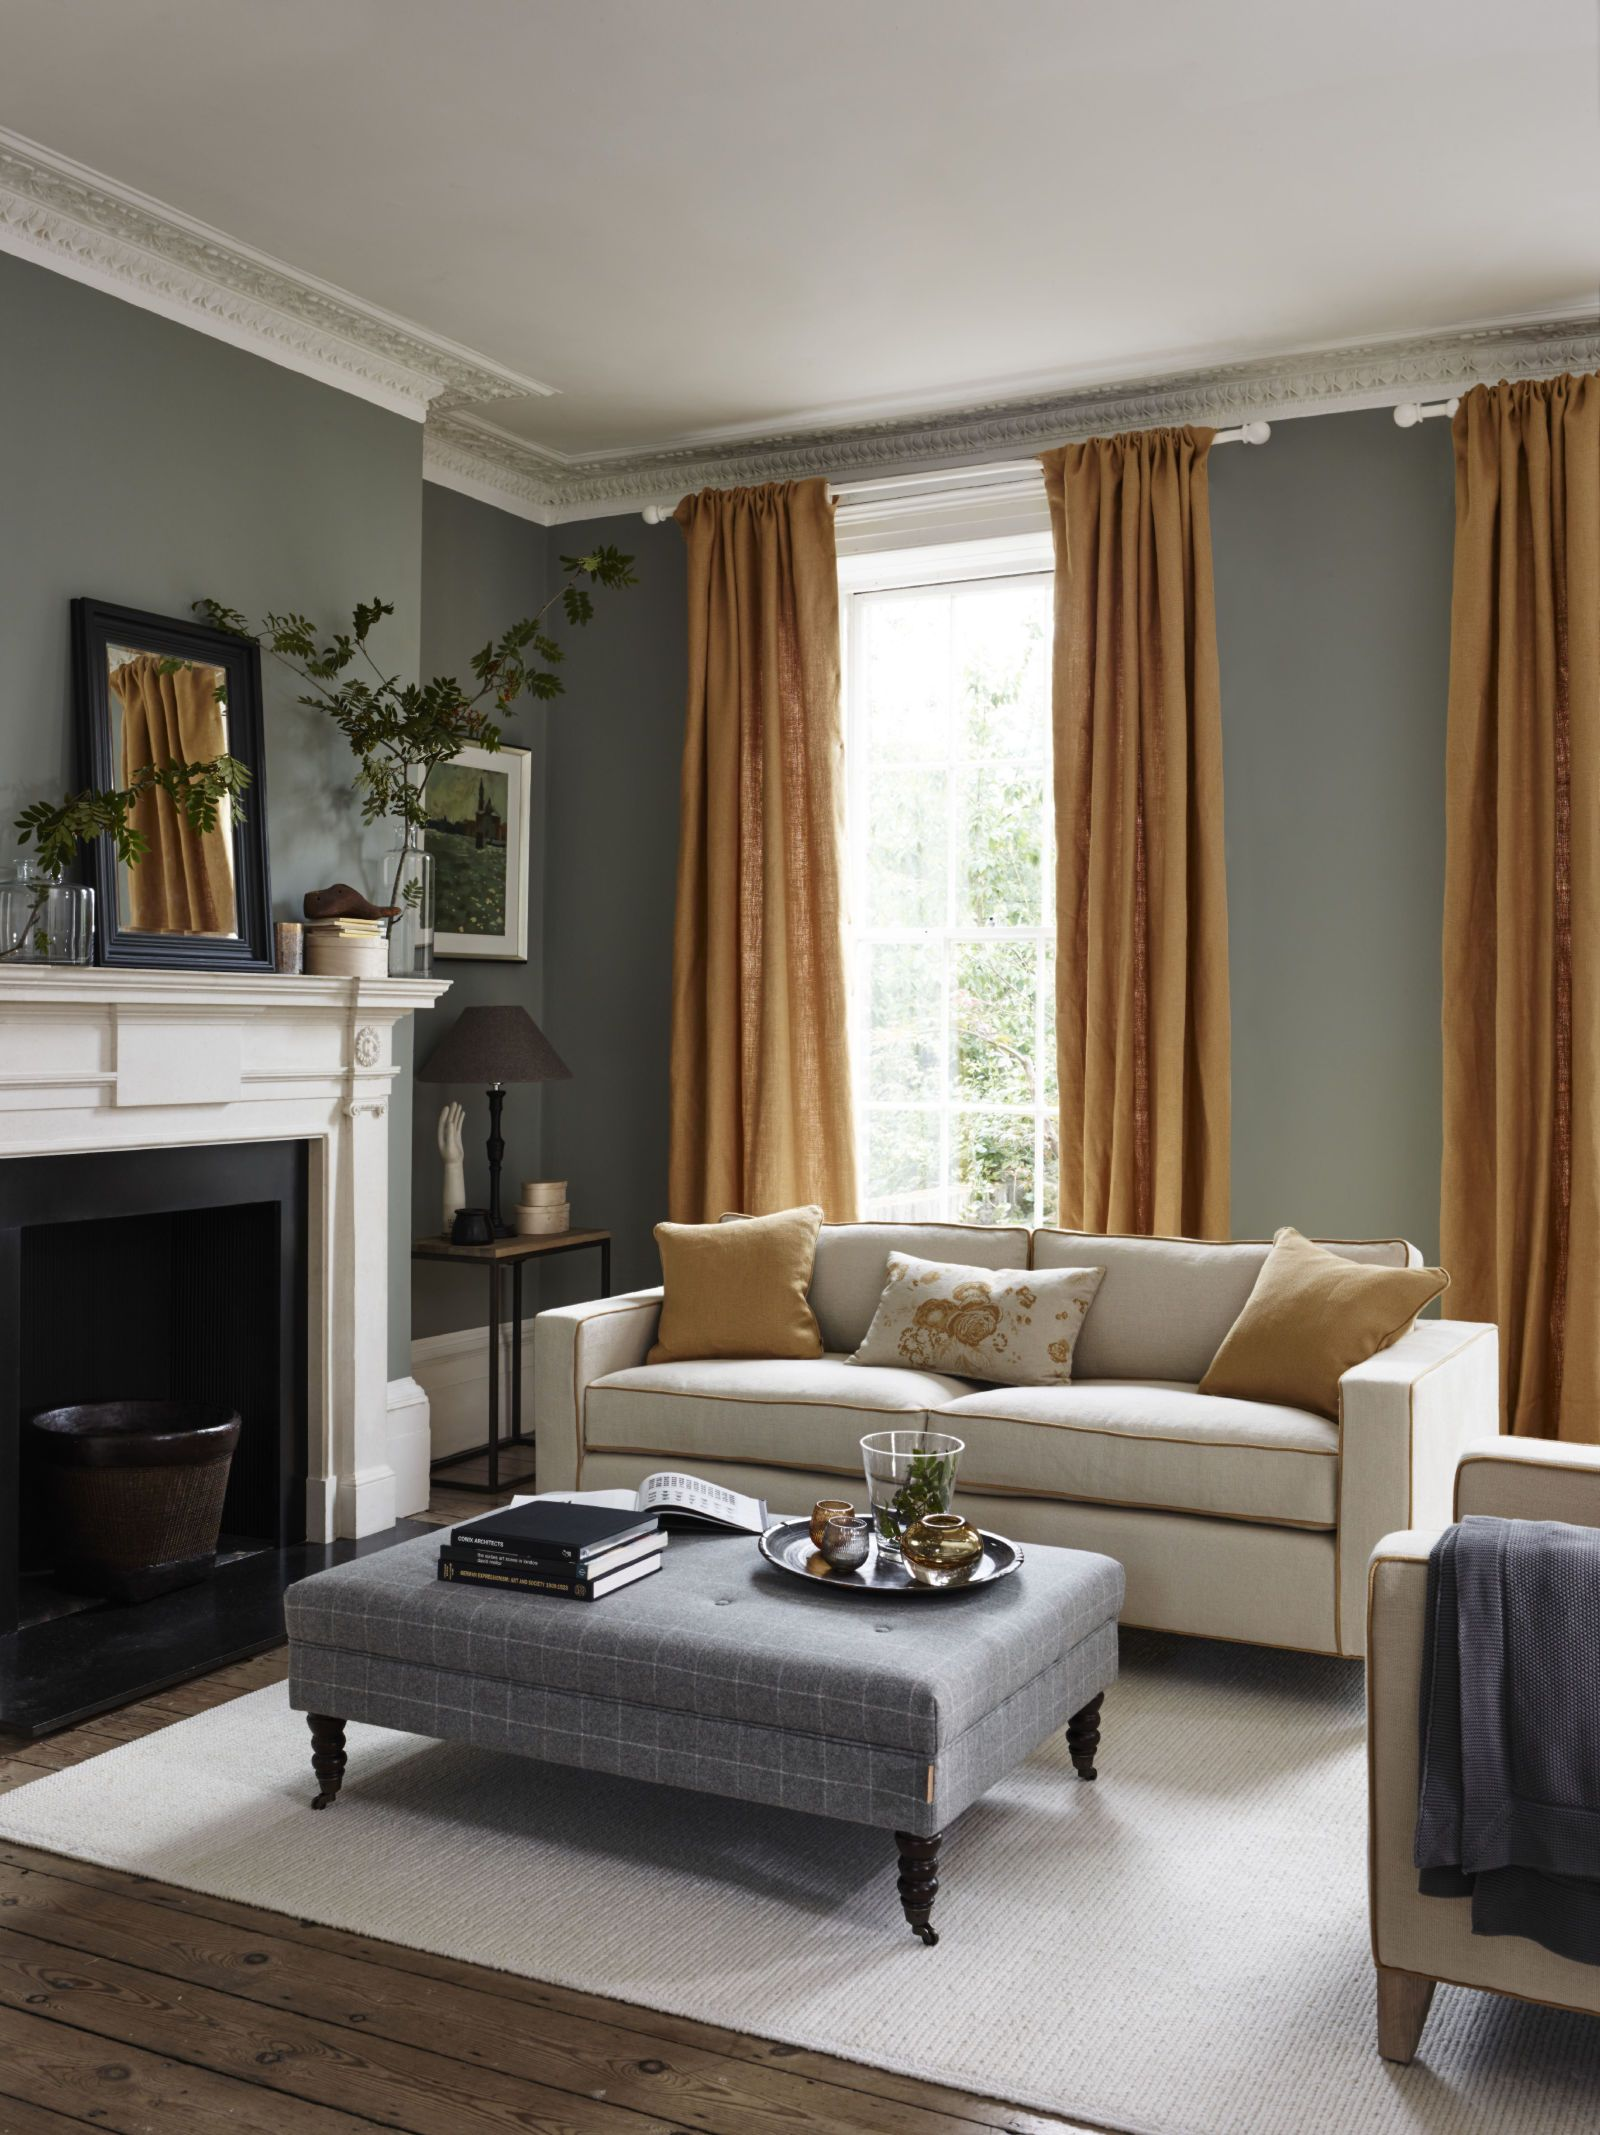 8 grey colour scheme ideas from an interior stylist | Accent ...